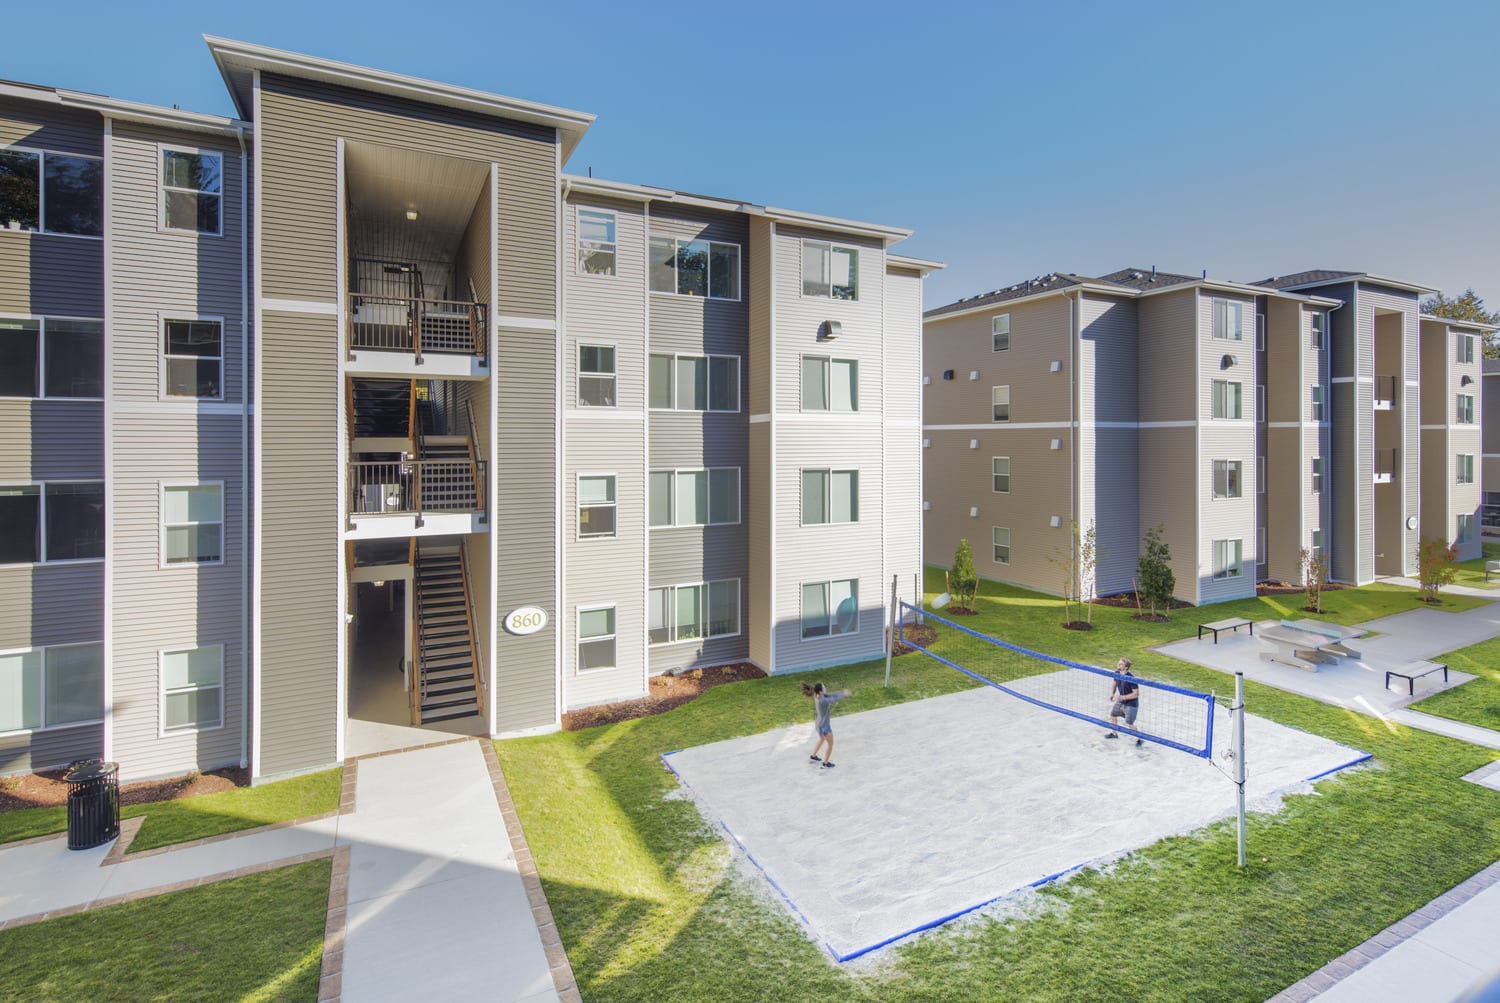 Off Campus Student Housing